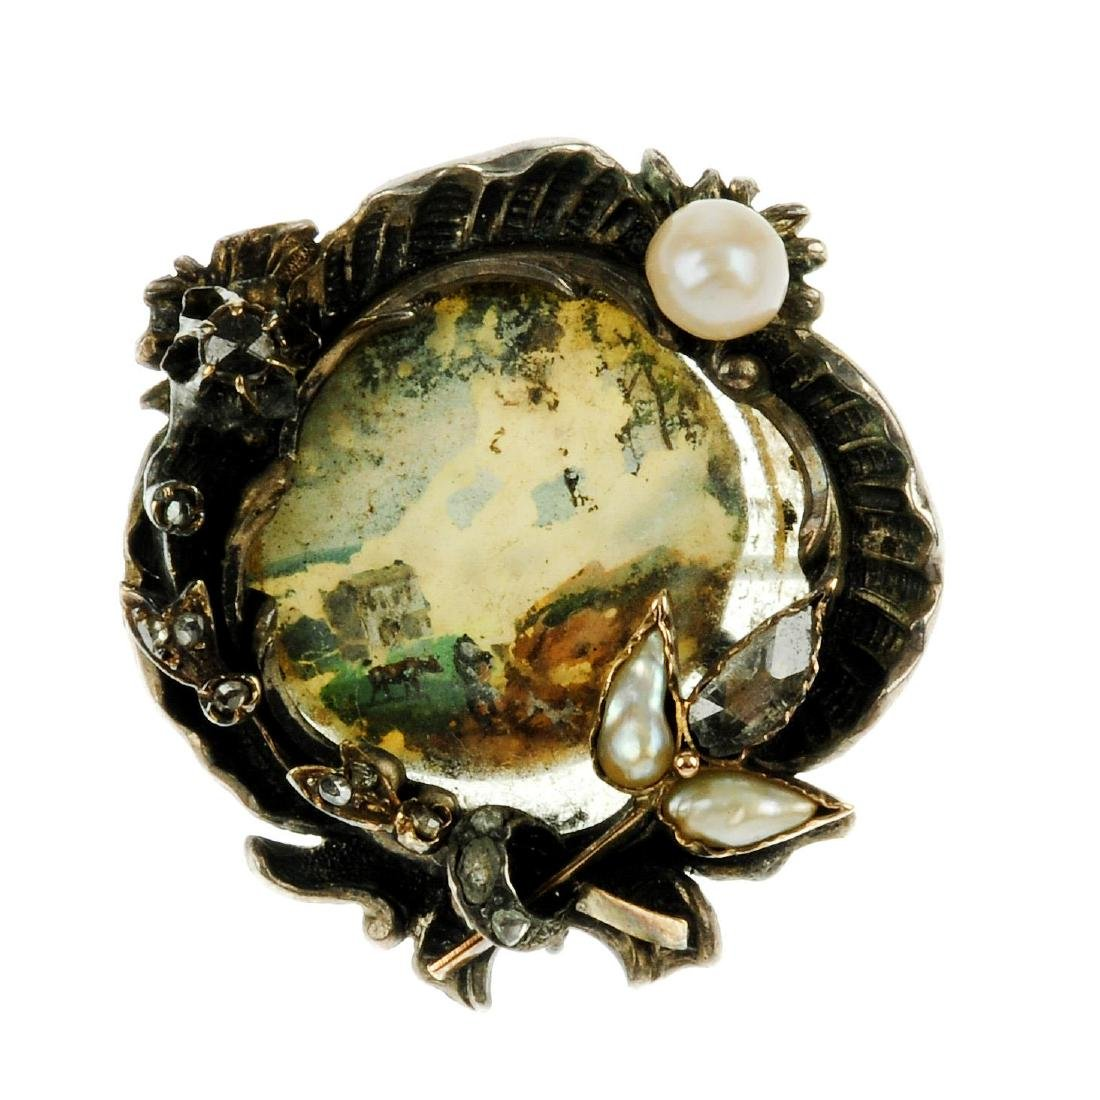 Two mid Victorian items of jewellery. The first a